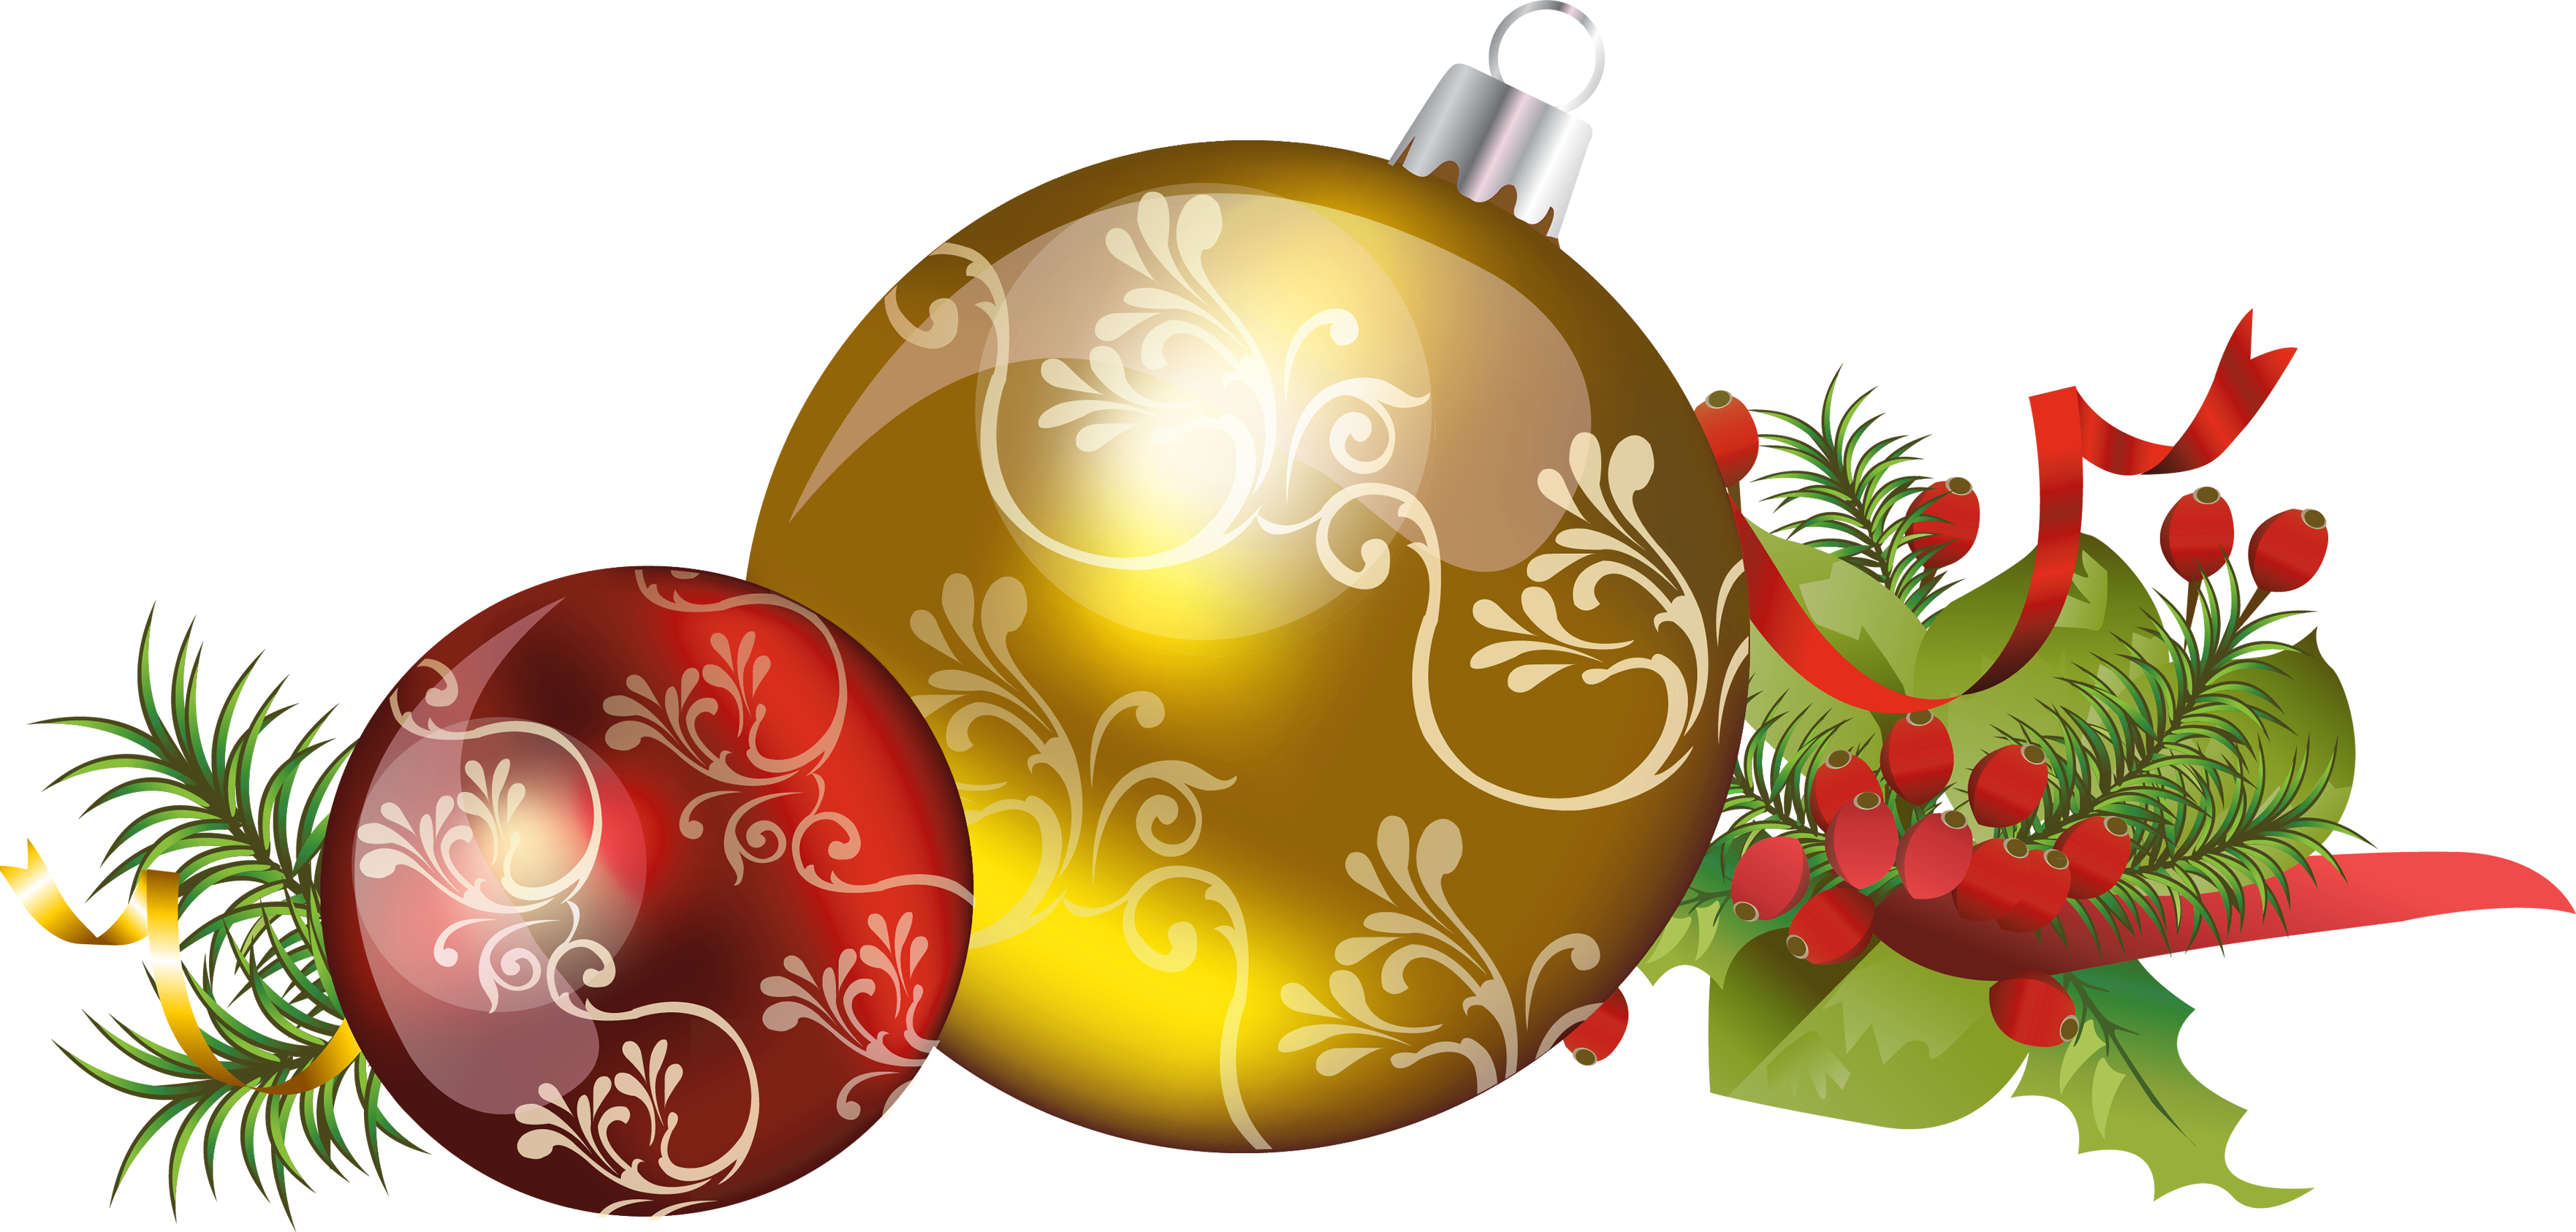 Christmas all over the world clipart jpg free stock Christmas PNG images download jpg free stock